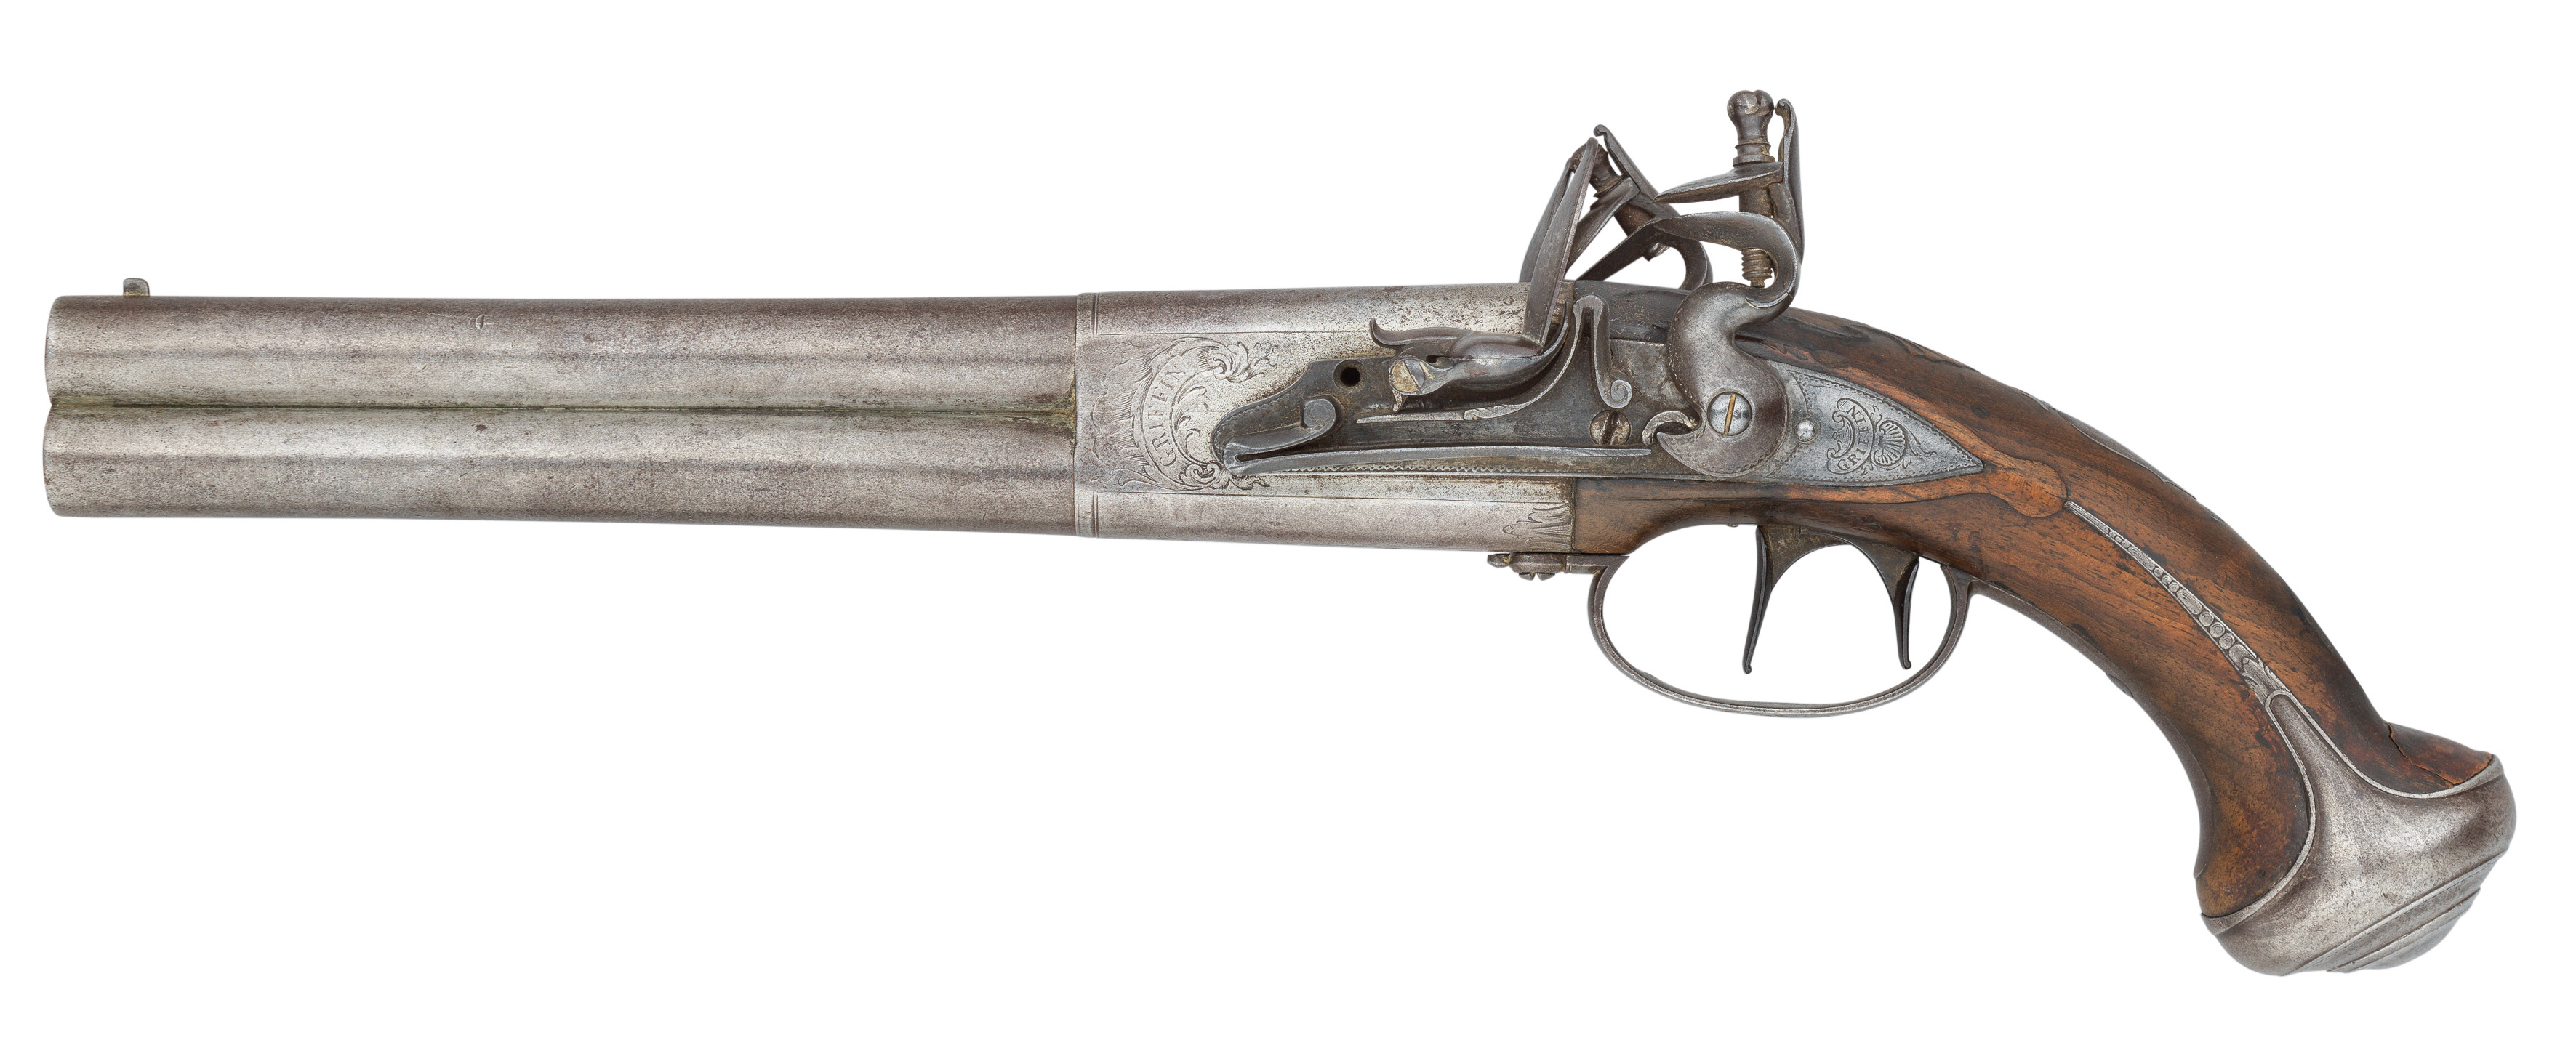 A RARE 18 BORE FLINTLOCK OVER-AND-UNDER DOUBLE TRIGGER HOLSTER PISTOL WITH PROVISION FOR A SHOULDER